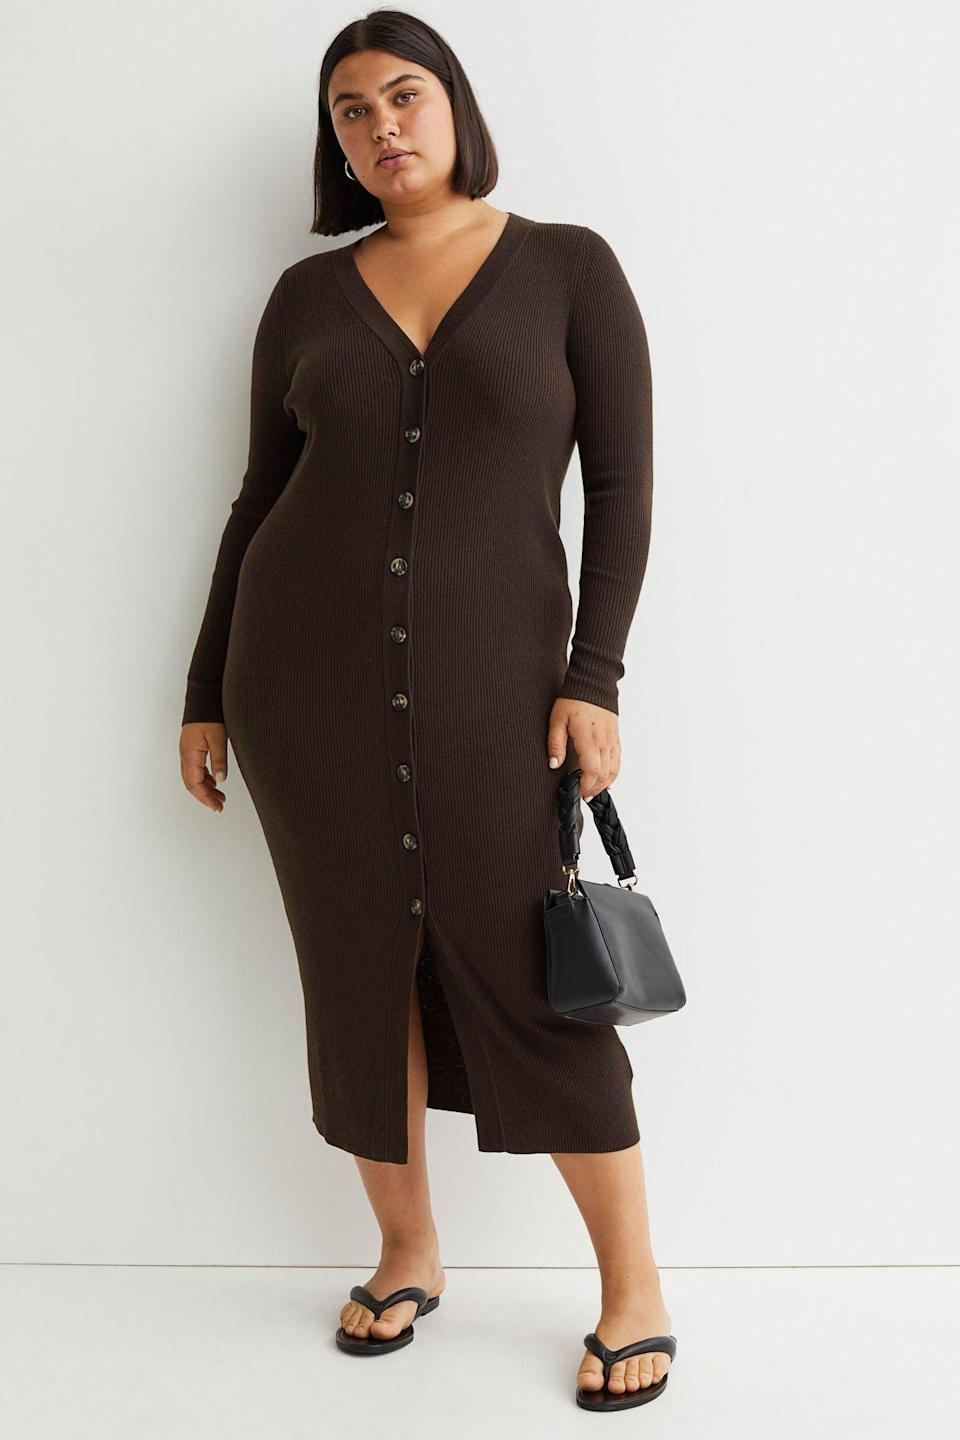 <p>This <span>H&amp;M+ Ribbed Dress</span> ($40) is a practical and elegant choice for the office or weekend adventures with friends in town. Finish off the look with thong sandals.</p>